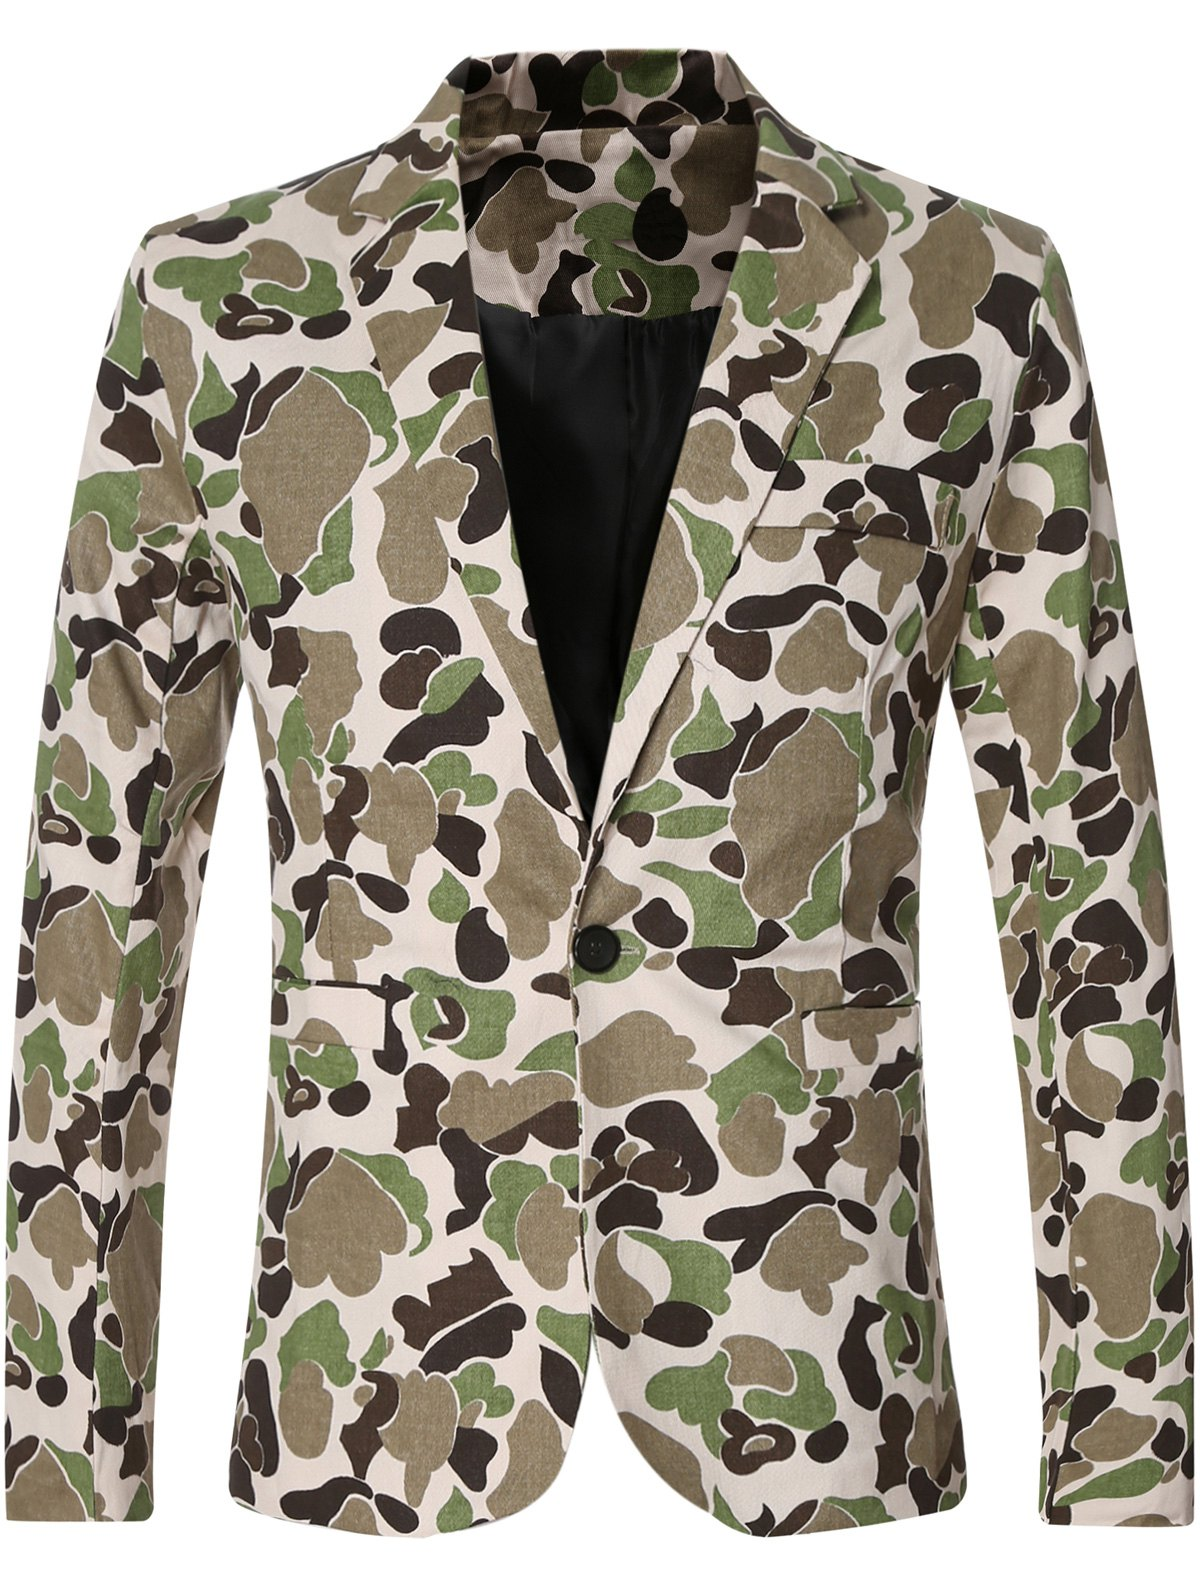 Single Button Opening Notched Lapel Collar Camo Bomber Blazer For Men - GREEN M